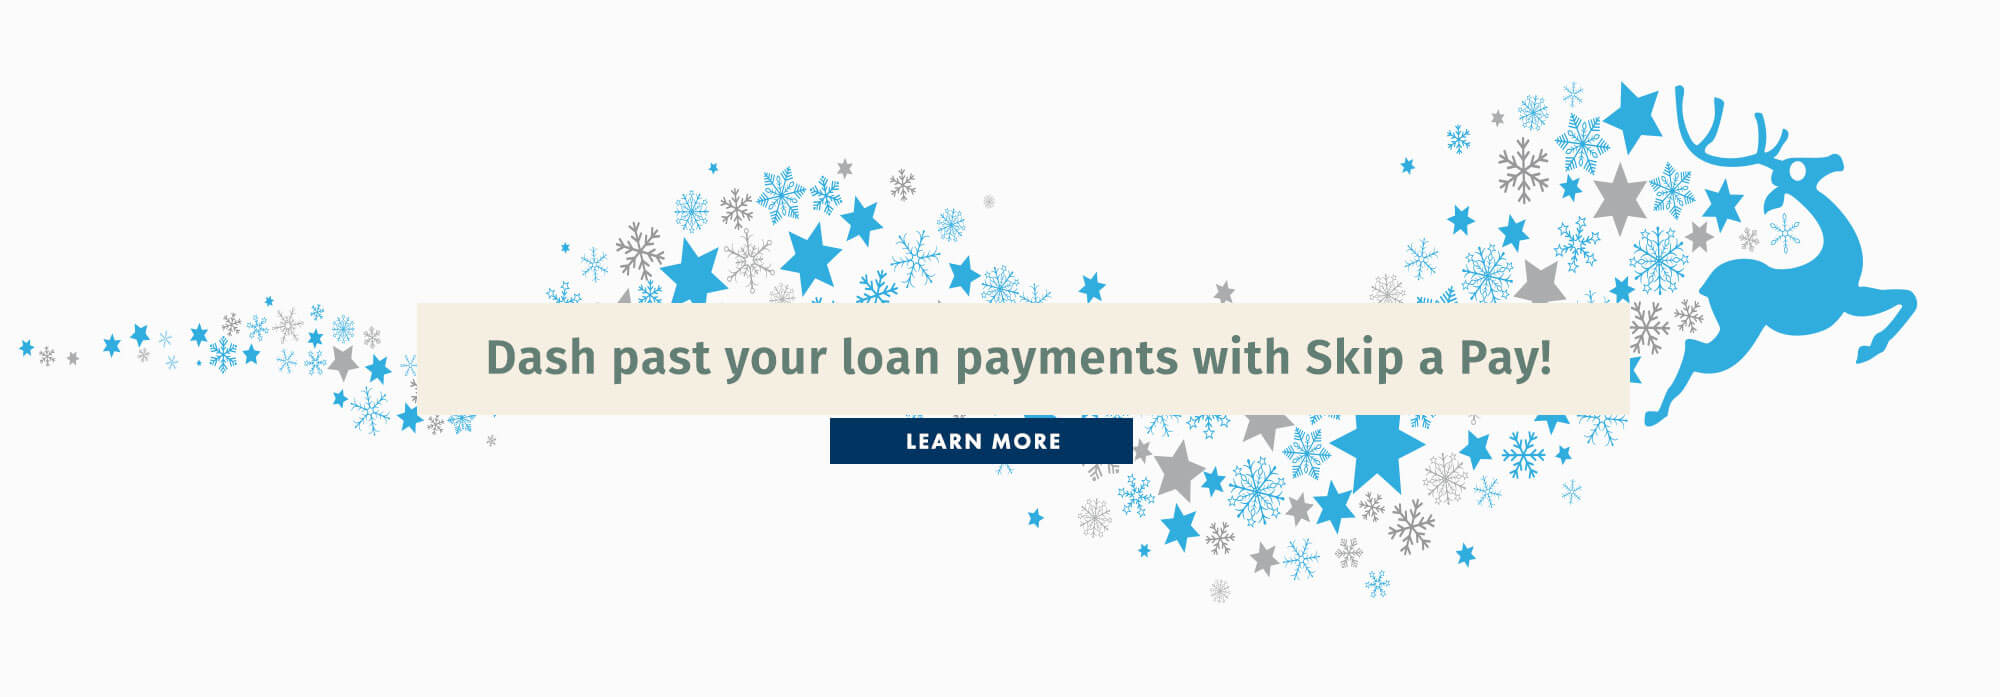 Dash past your loan payments with Skip A Pay!